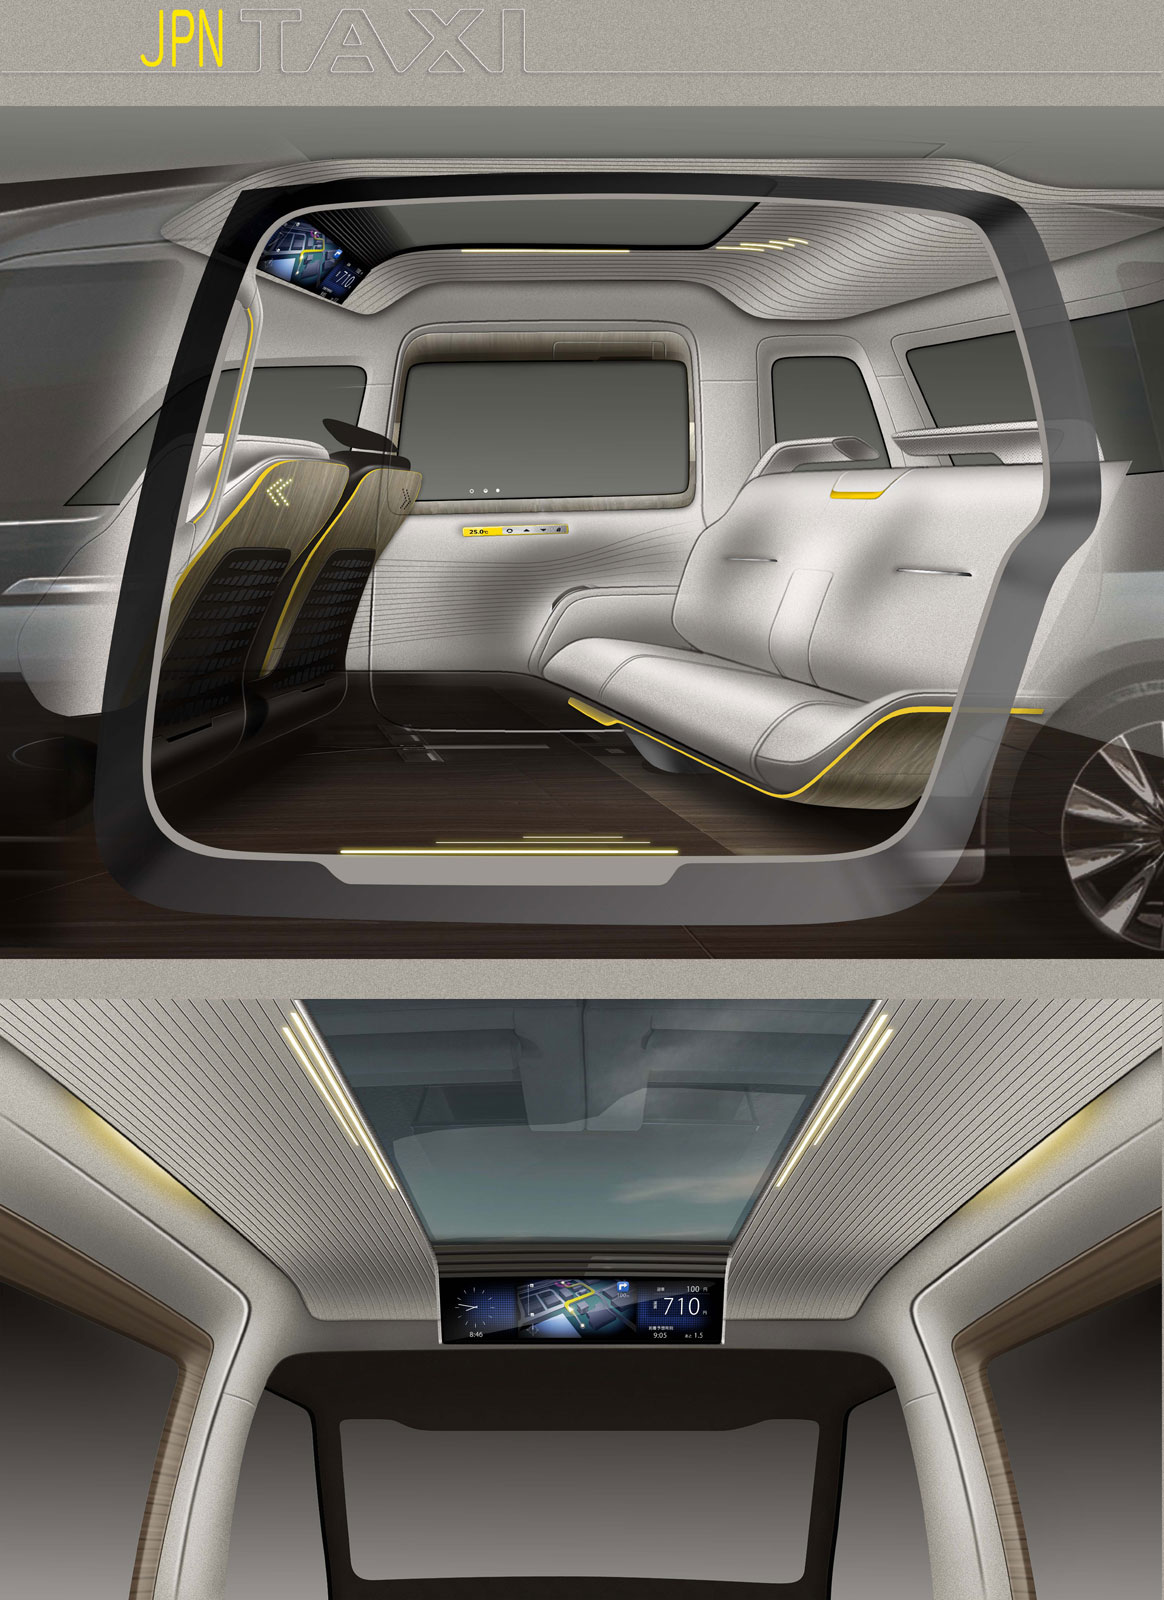 Toyota jpn taxi concept interior design sketches car - Car interior design ...